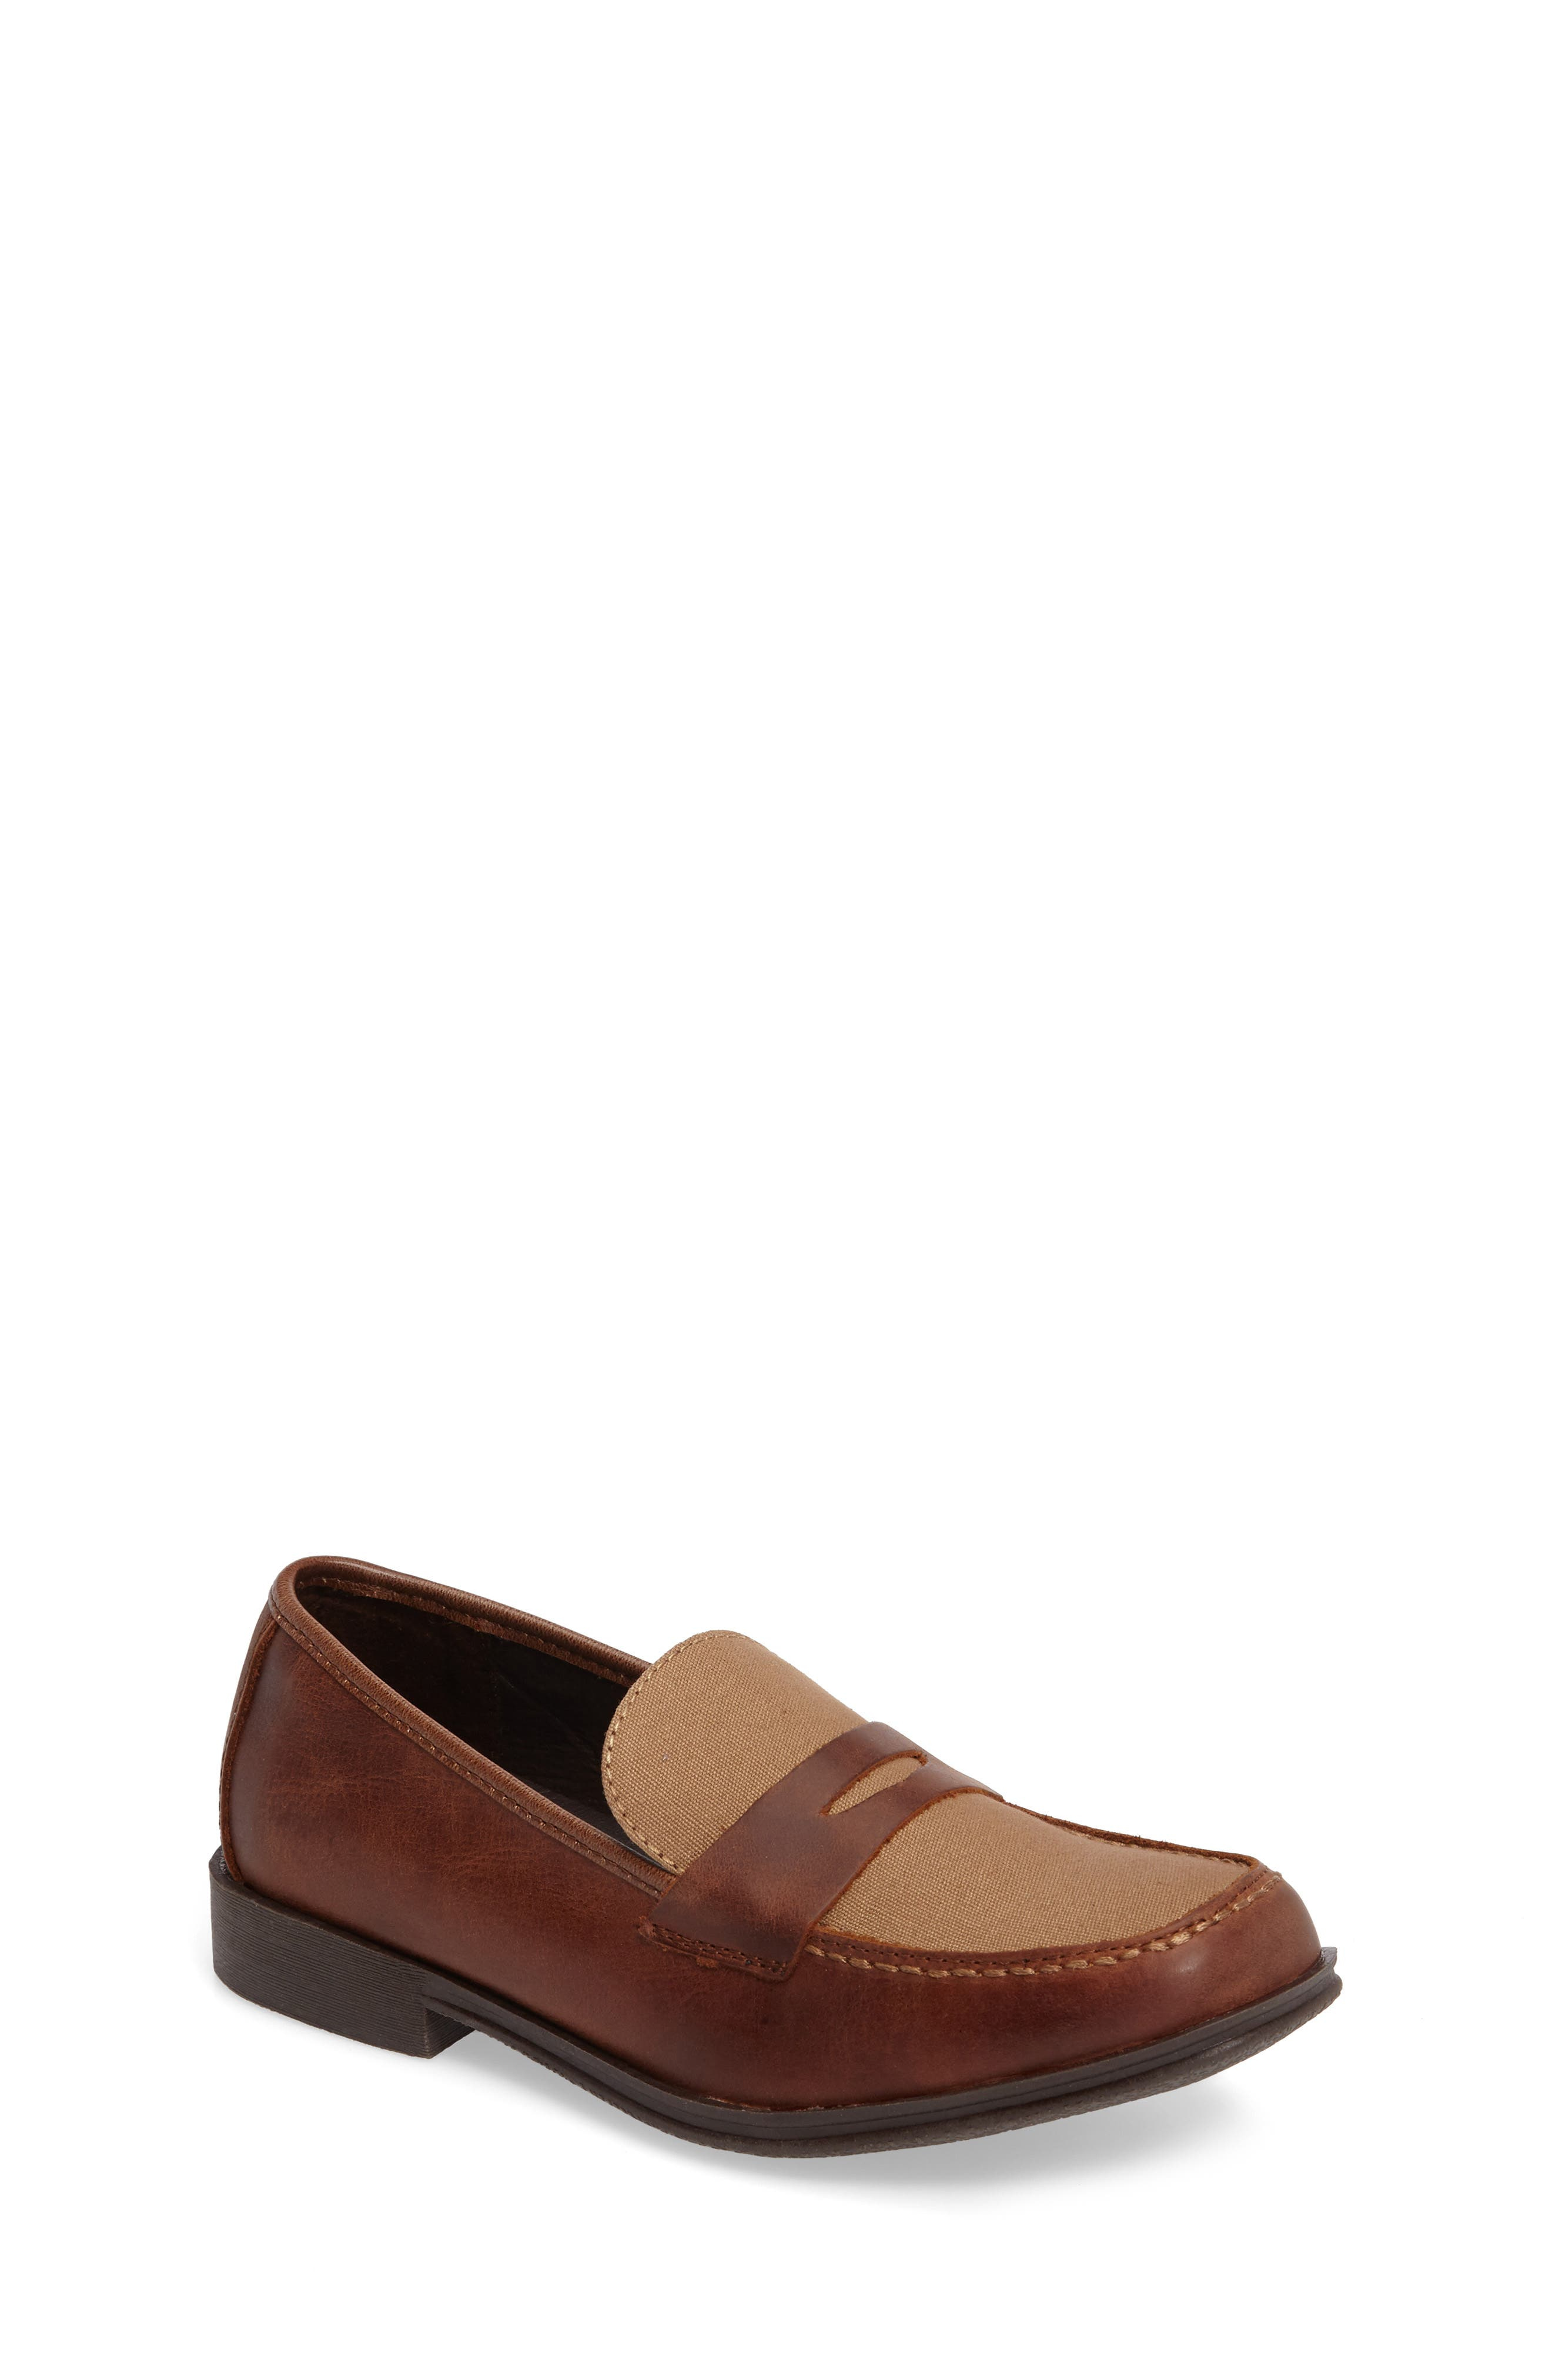 Club Loft Loafer,                         Main,                         color, Tan/ Brown Leather